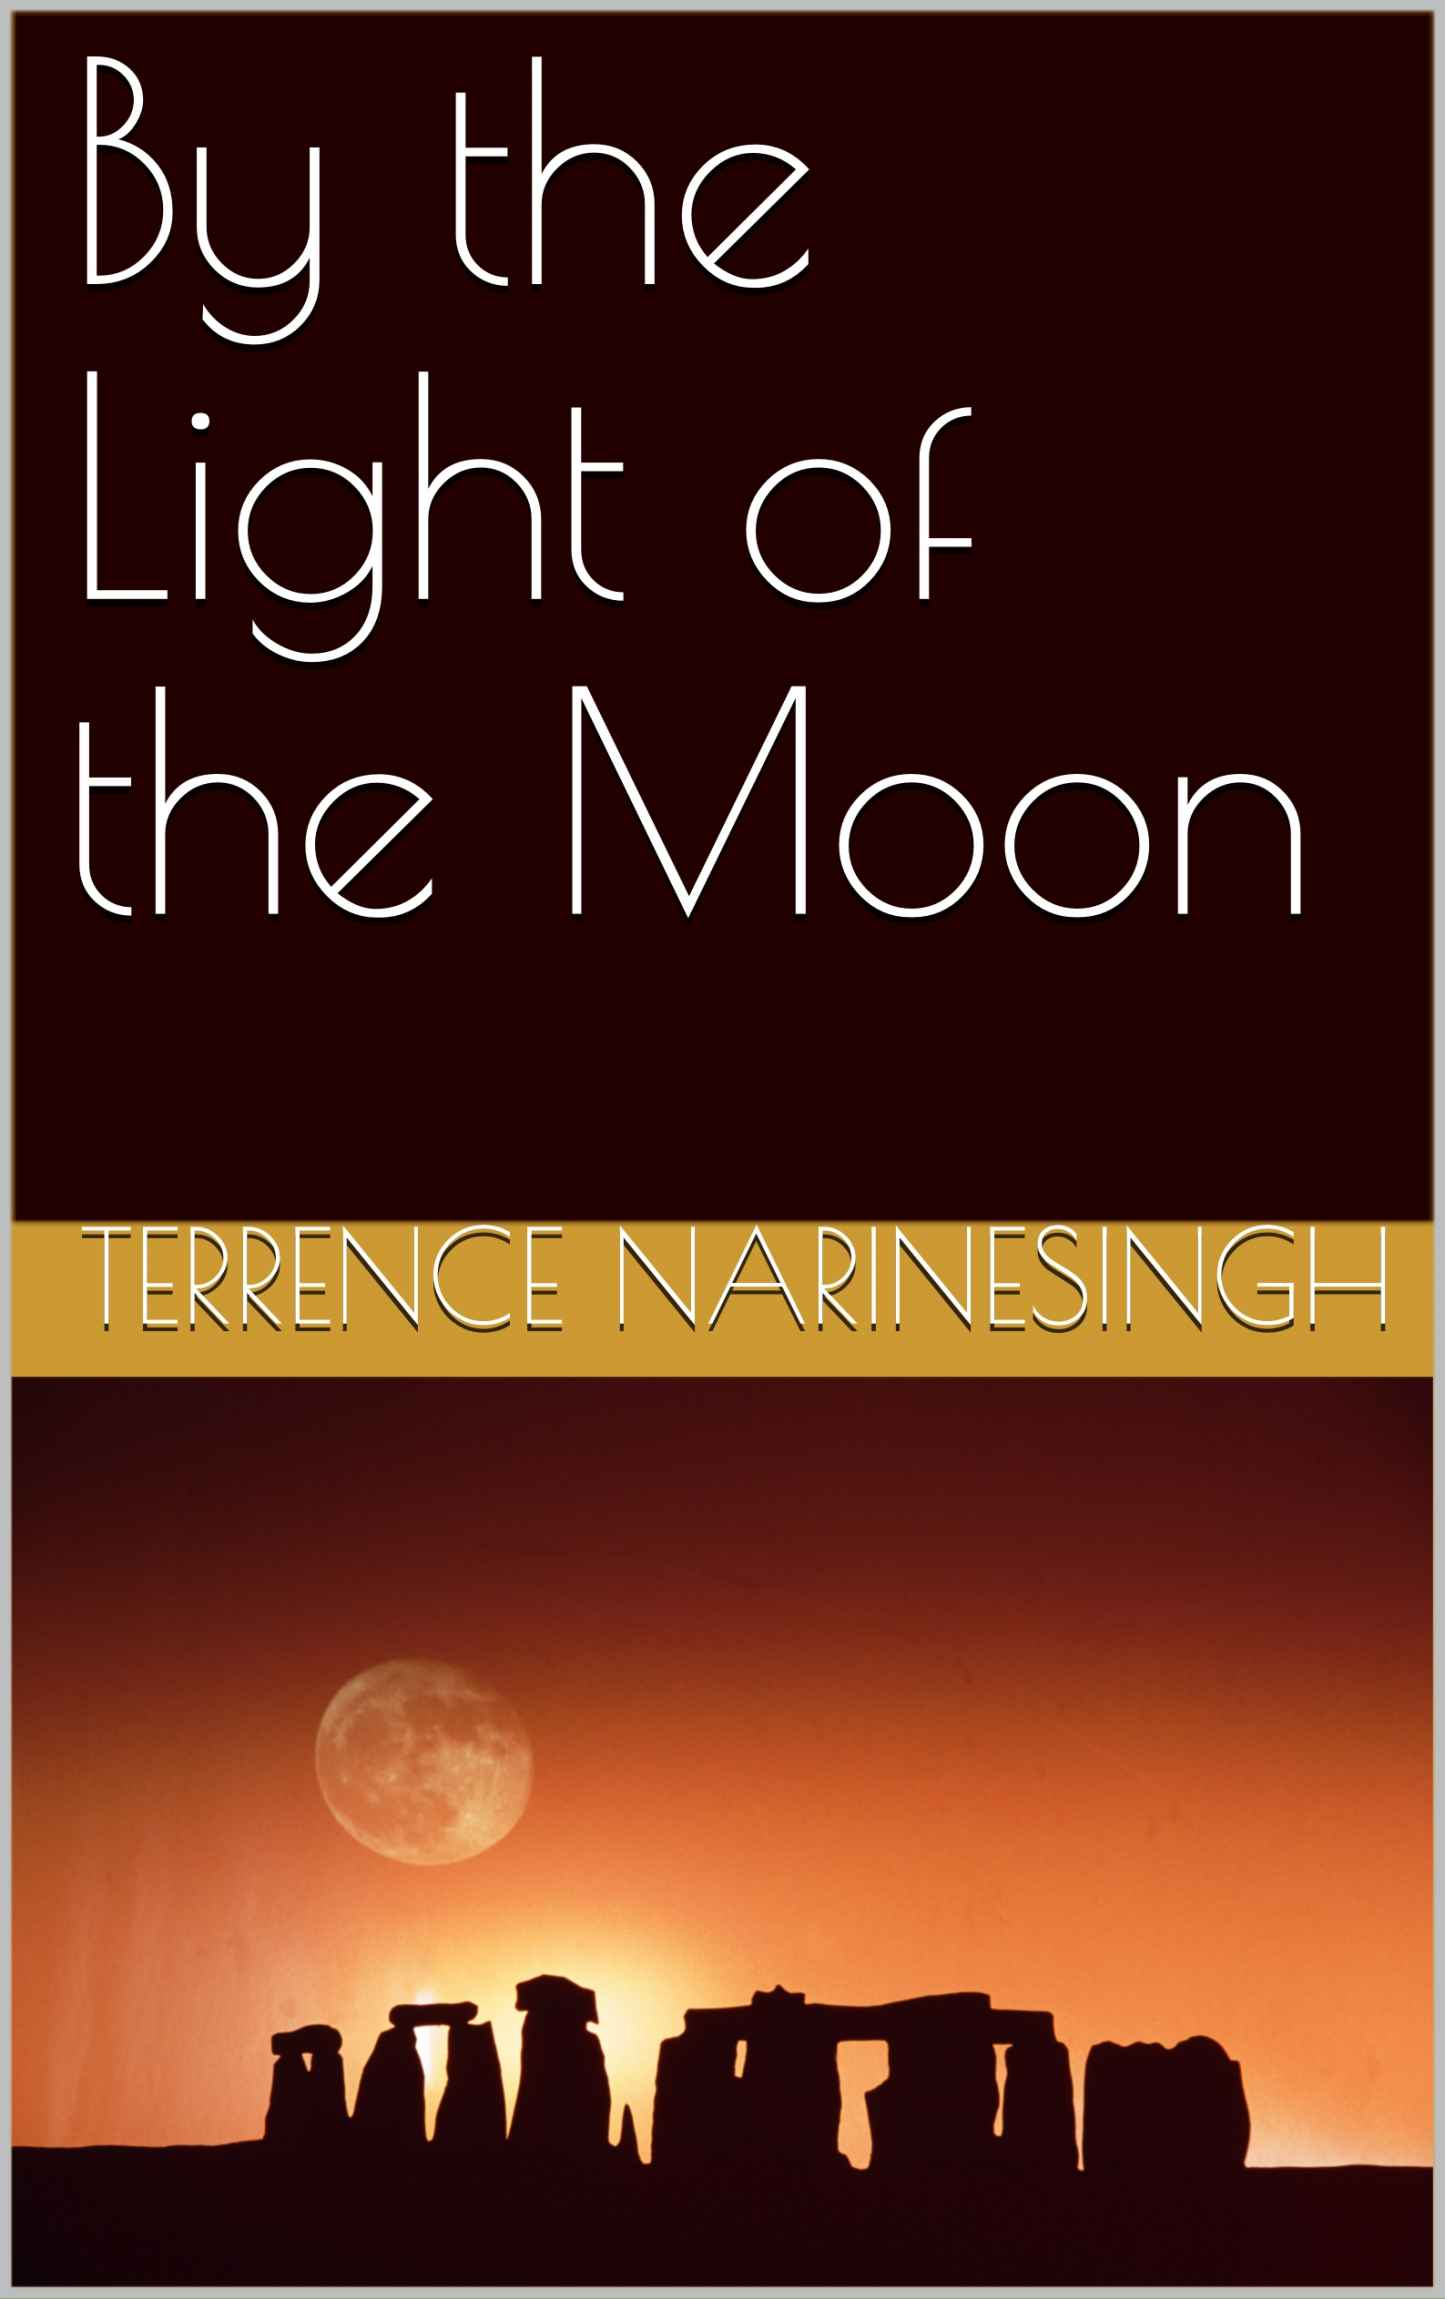 Terrence Narinesingh's By the light of the Moon